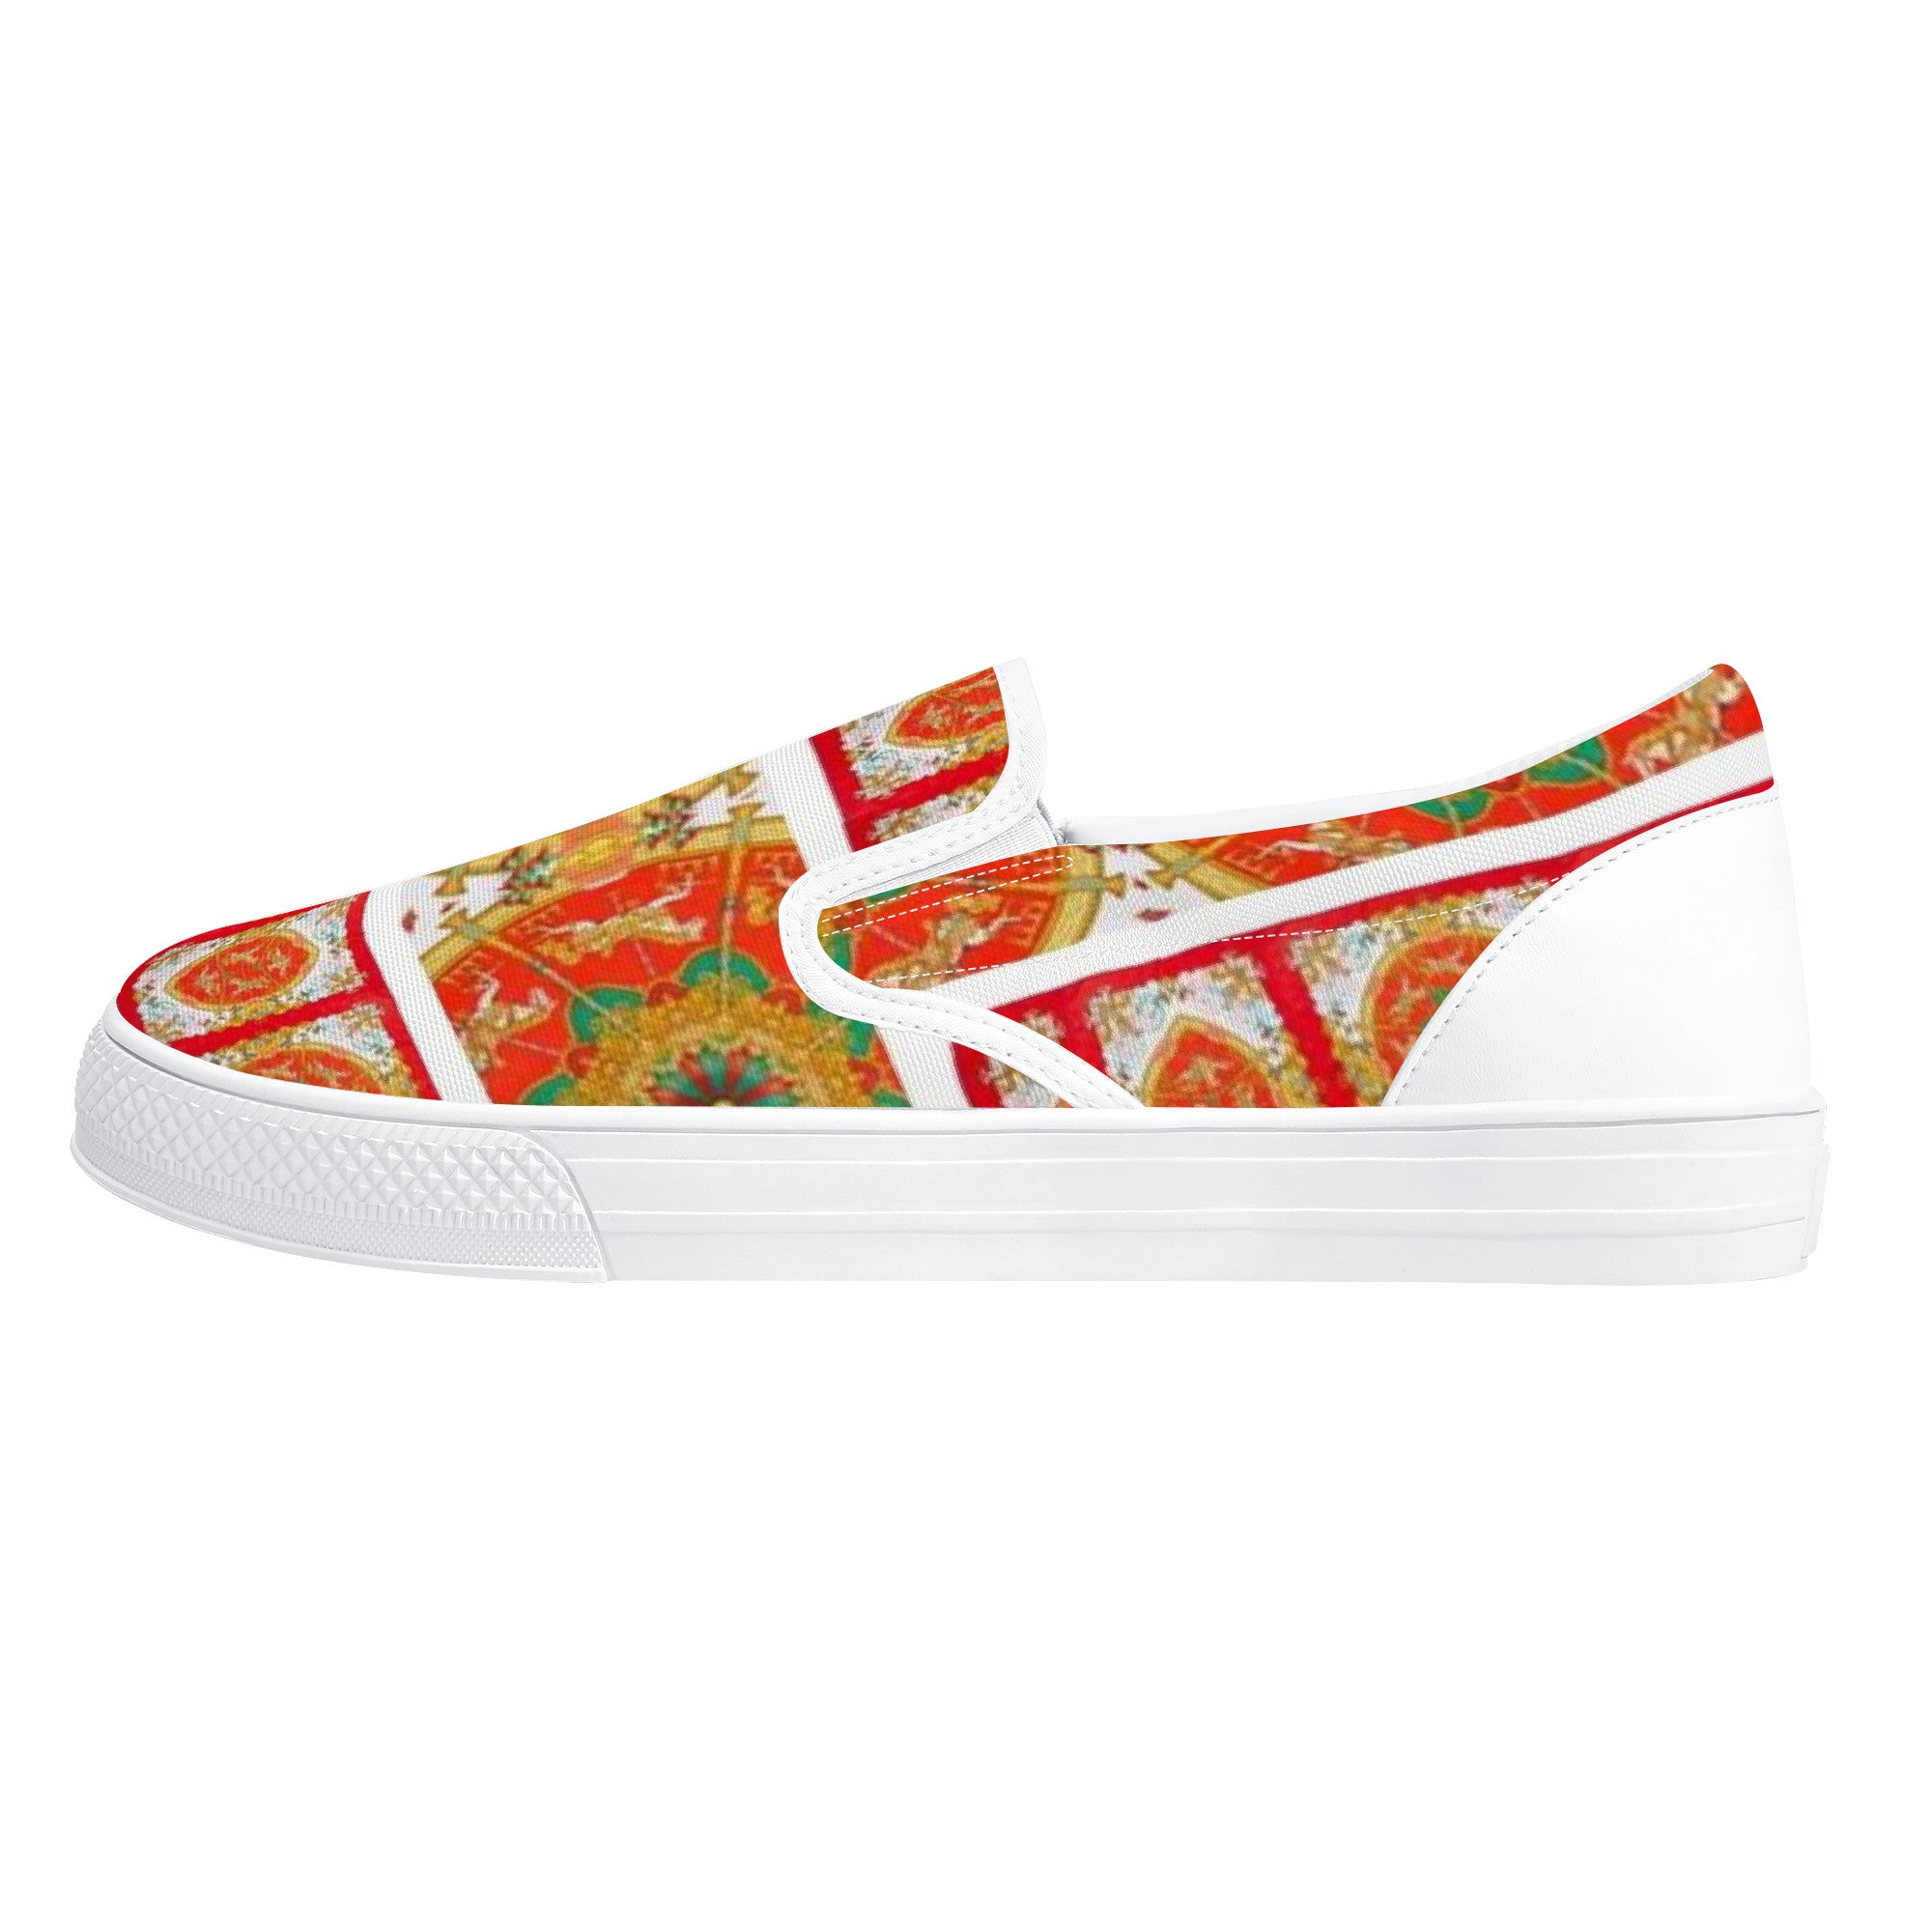 D31 Slip-on Shoes – White  x good Heart of gold 4 loveD31 Slip-on Shoes – White  x good Heart of gold 4 loveEugène Eric Emboukouon June 1, 2021 at 10:12 pm Eugène Eric Emboukou